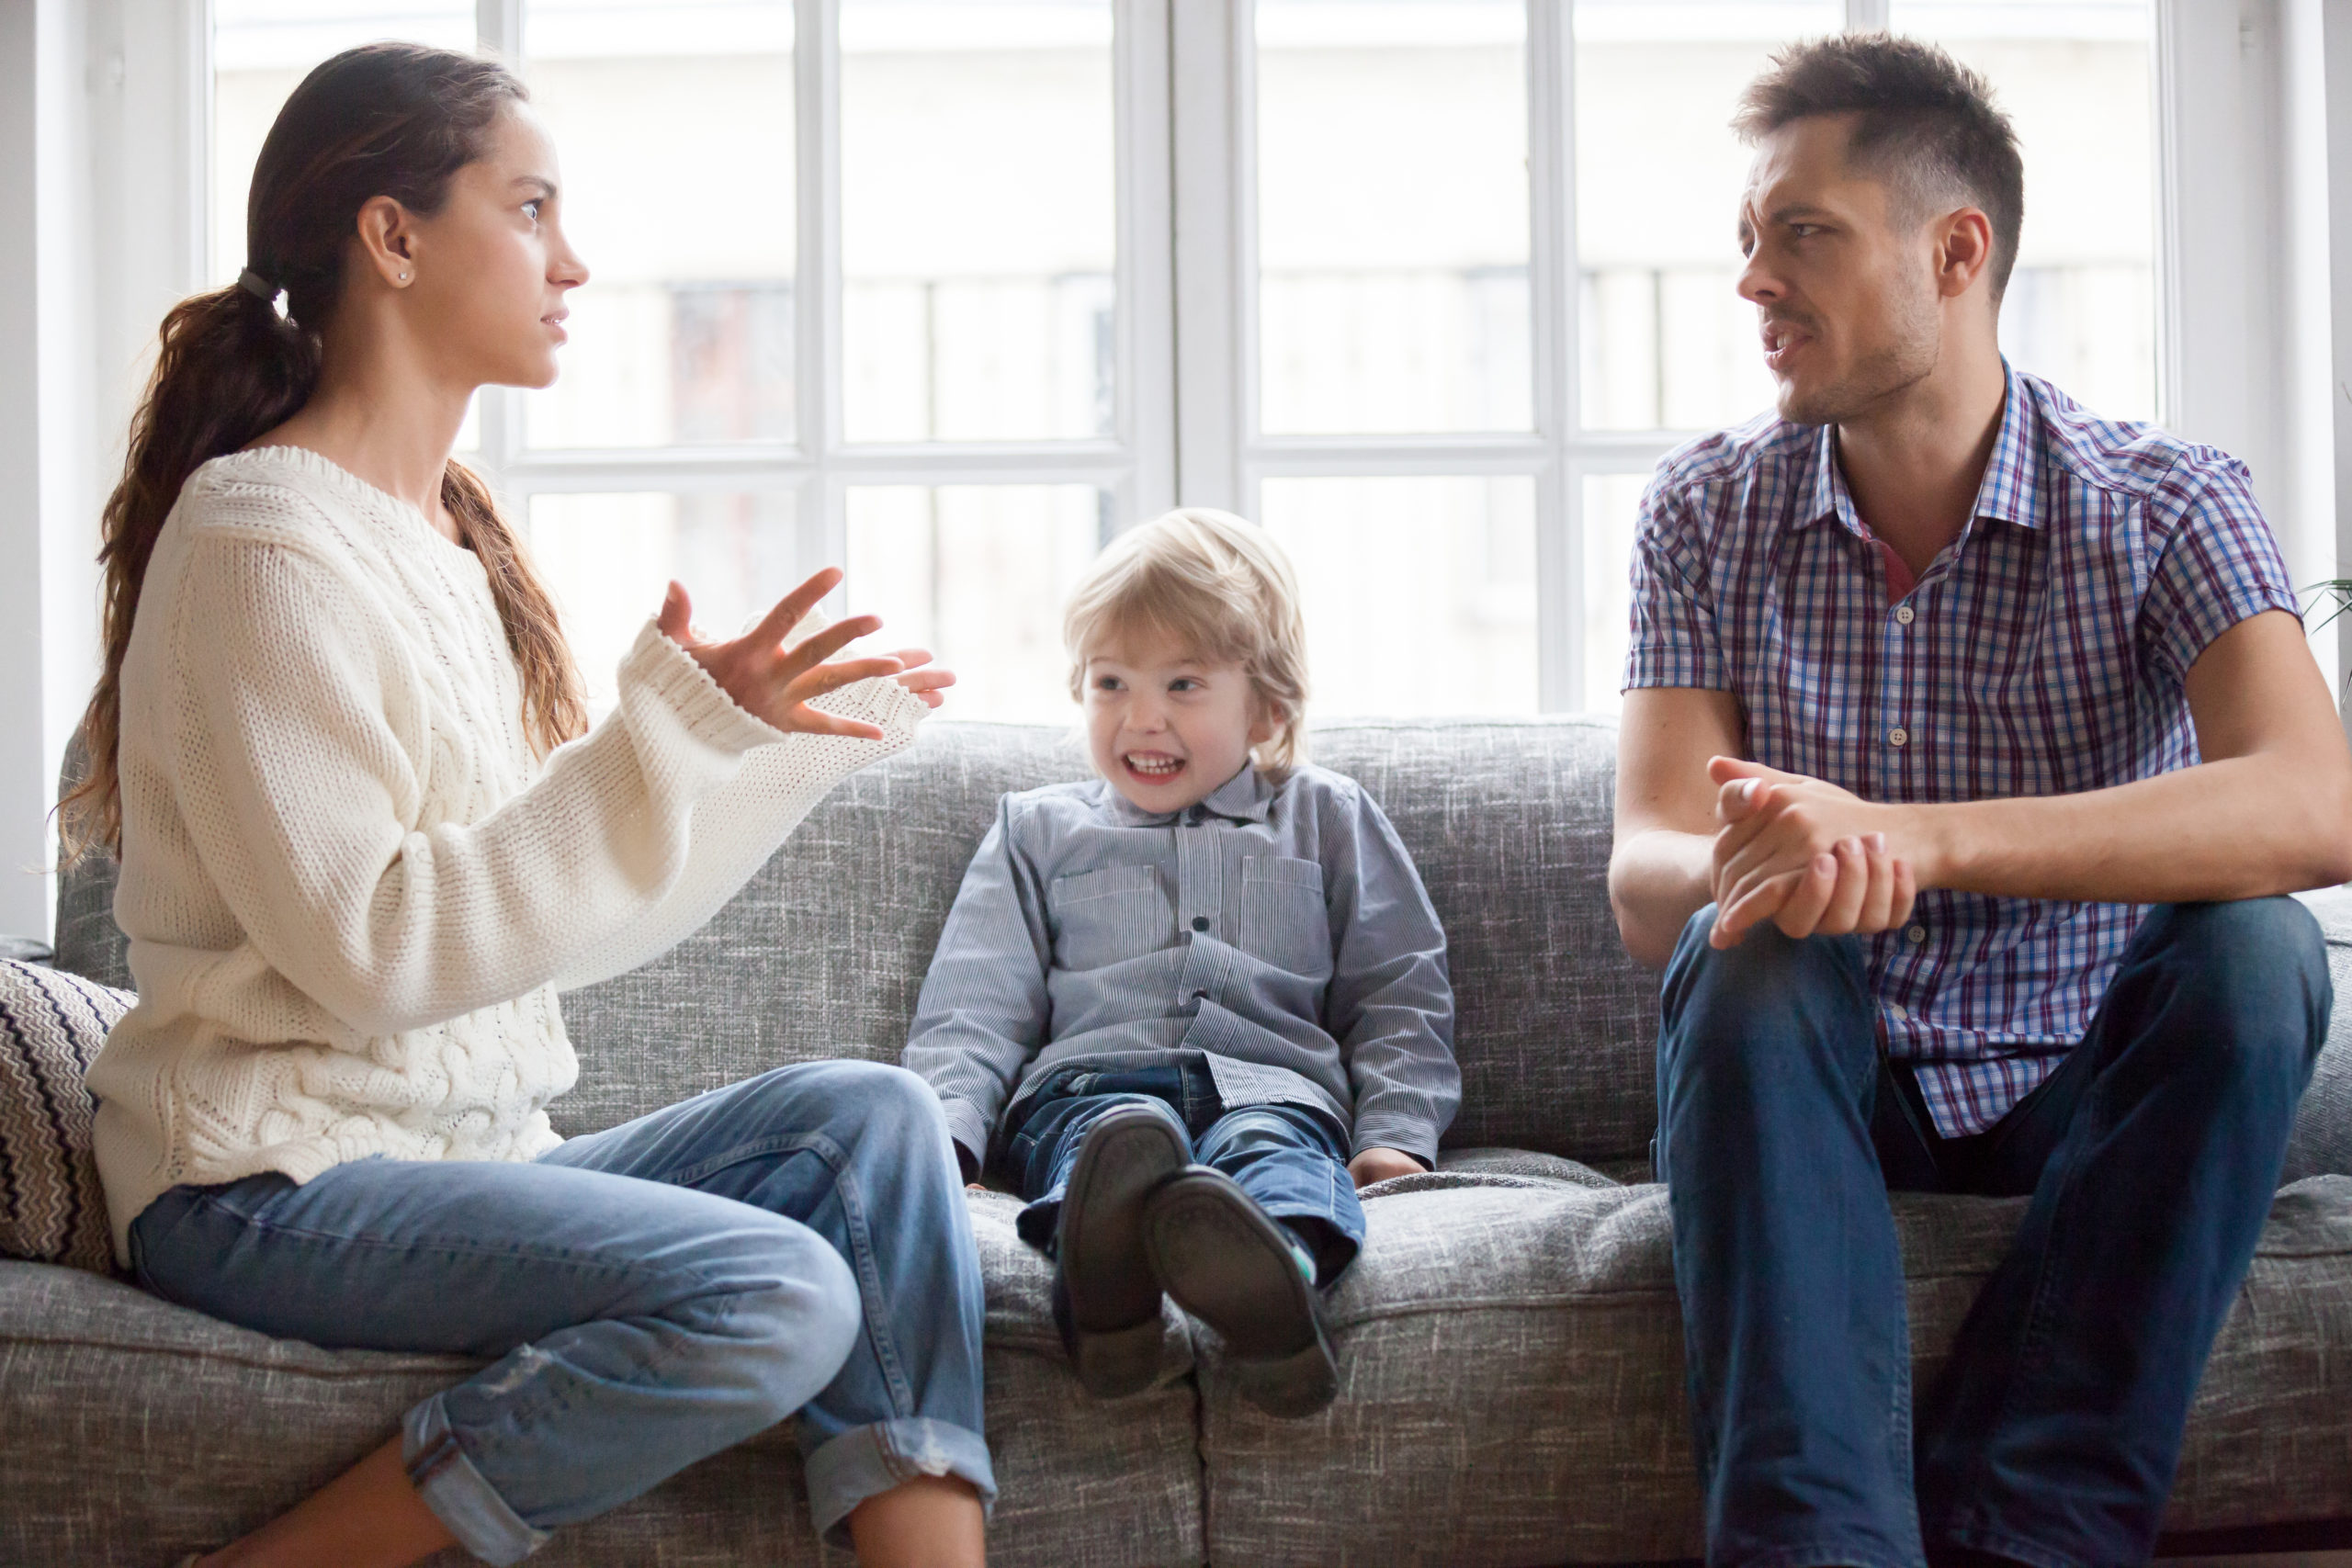 Save Your Right to Hold Your Child Through The Help of a Custody Lawyer